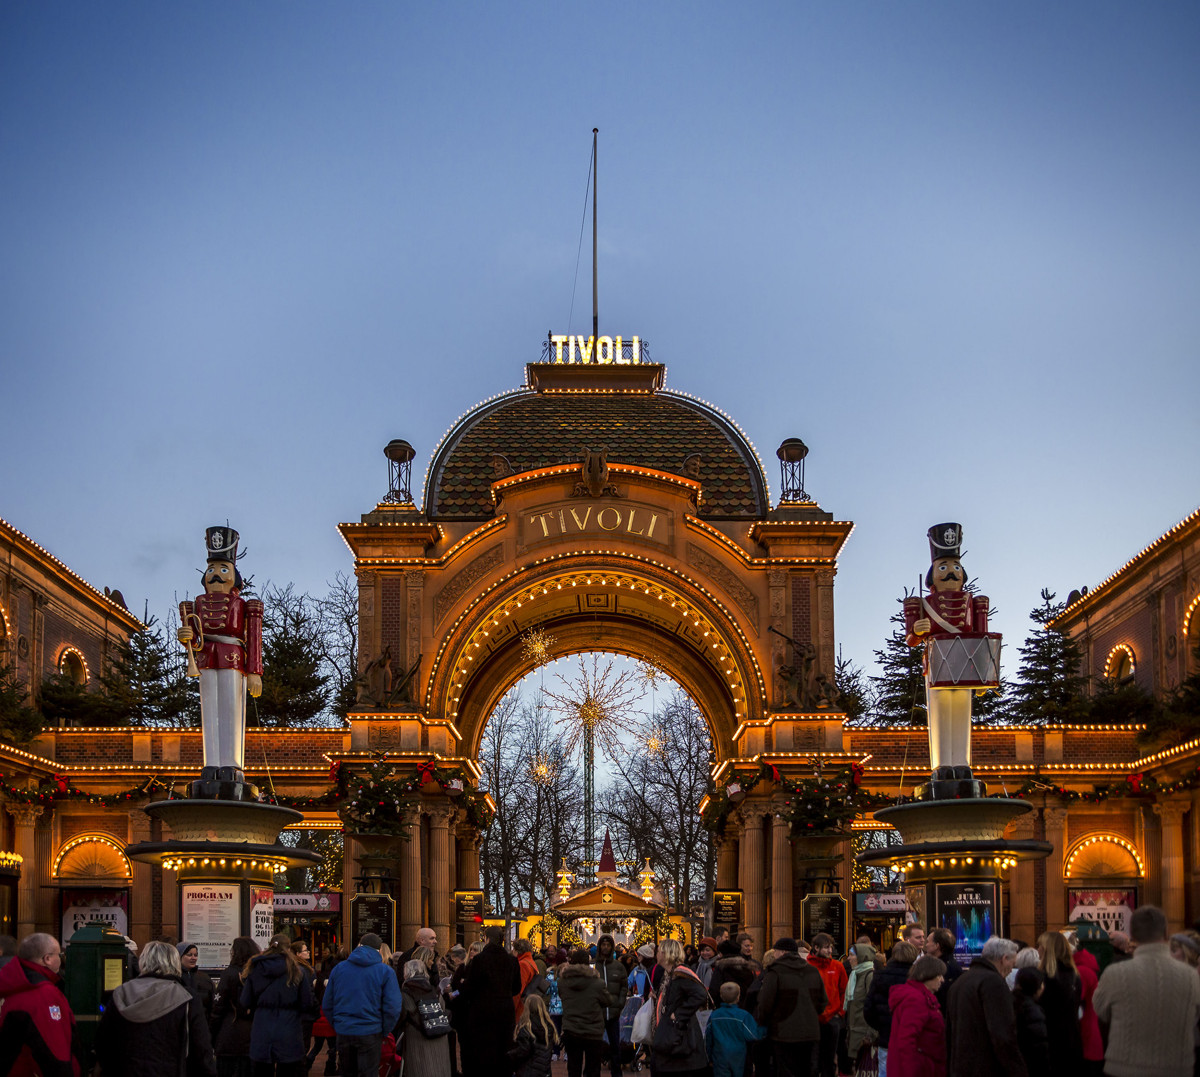 a sprinkle of winter magic at tivoli gardens copenhagen